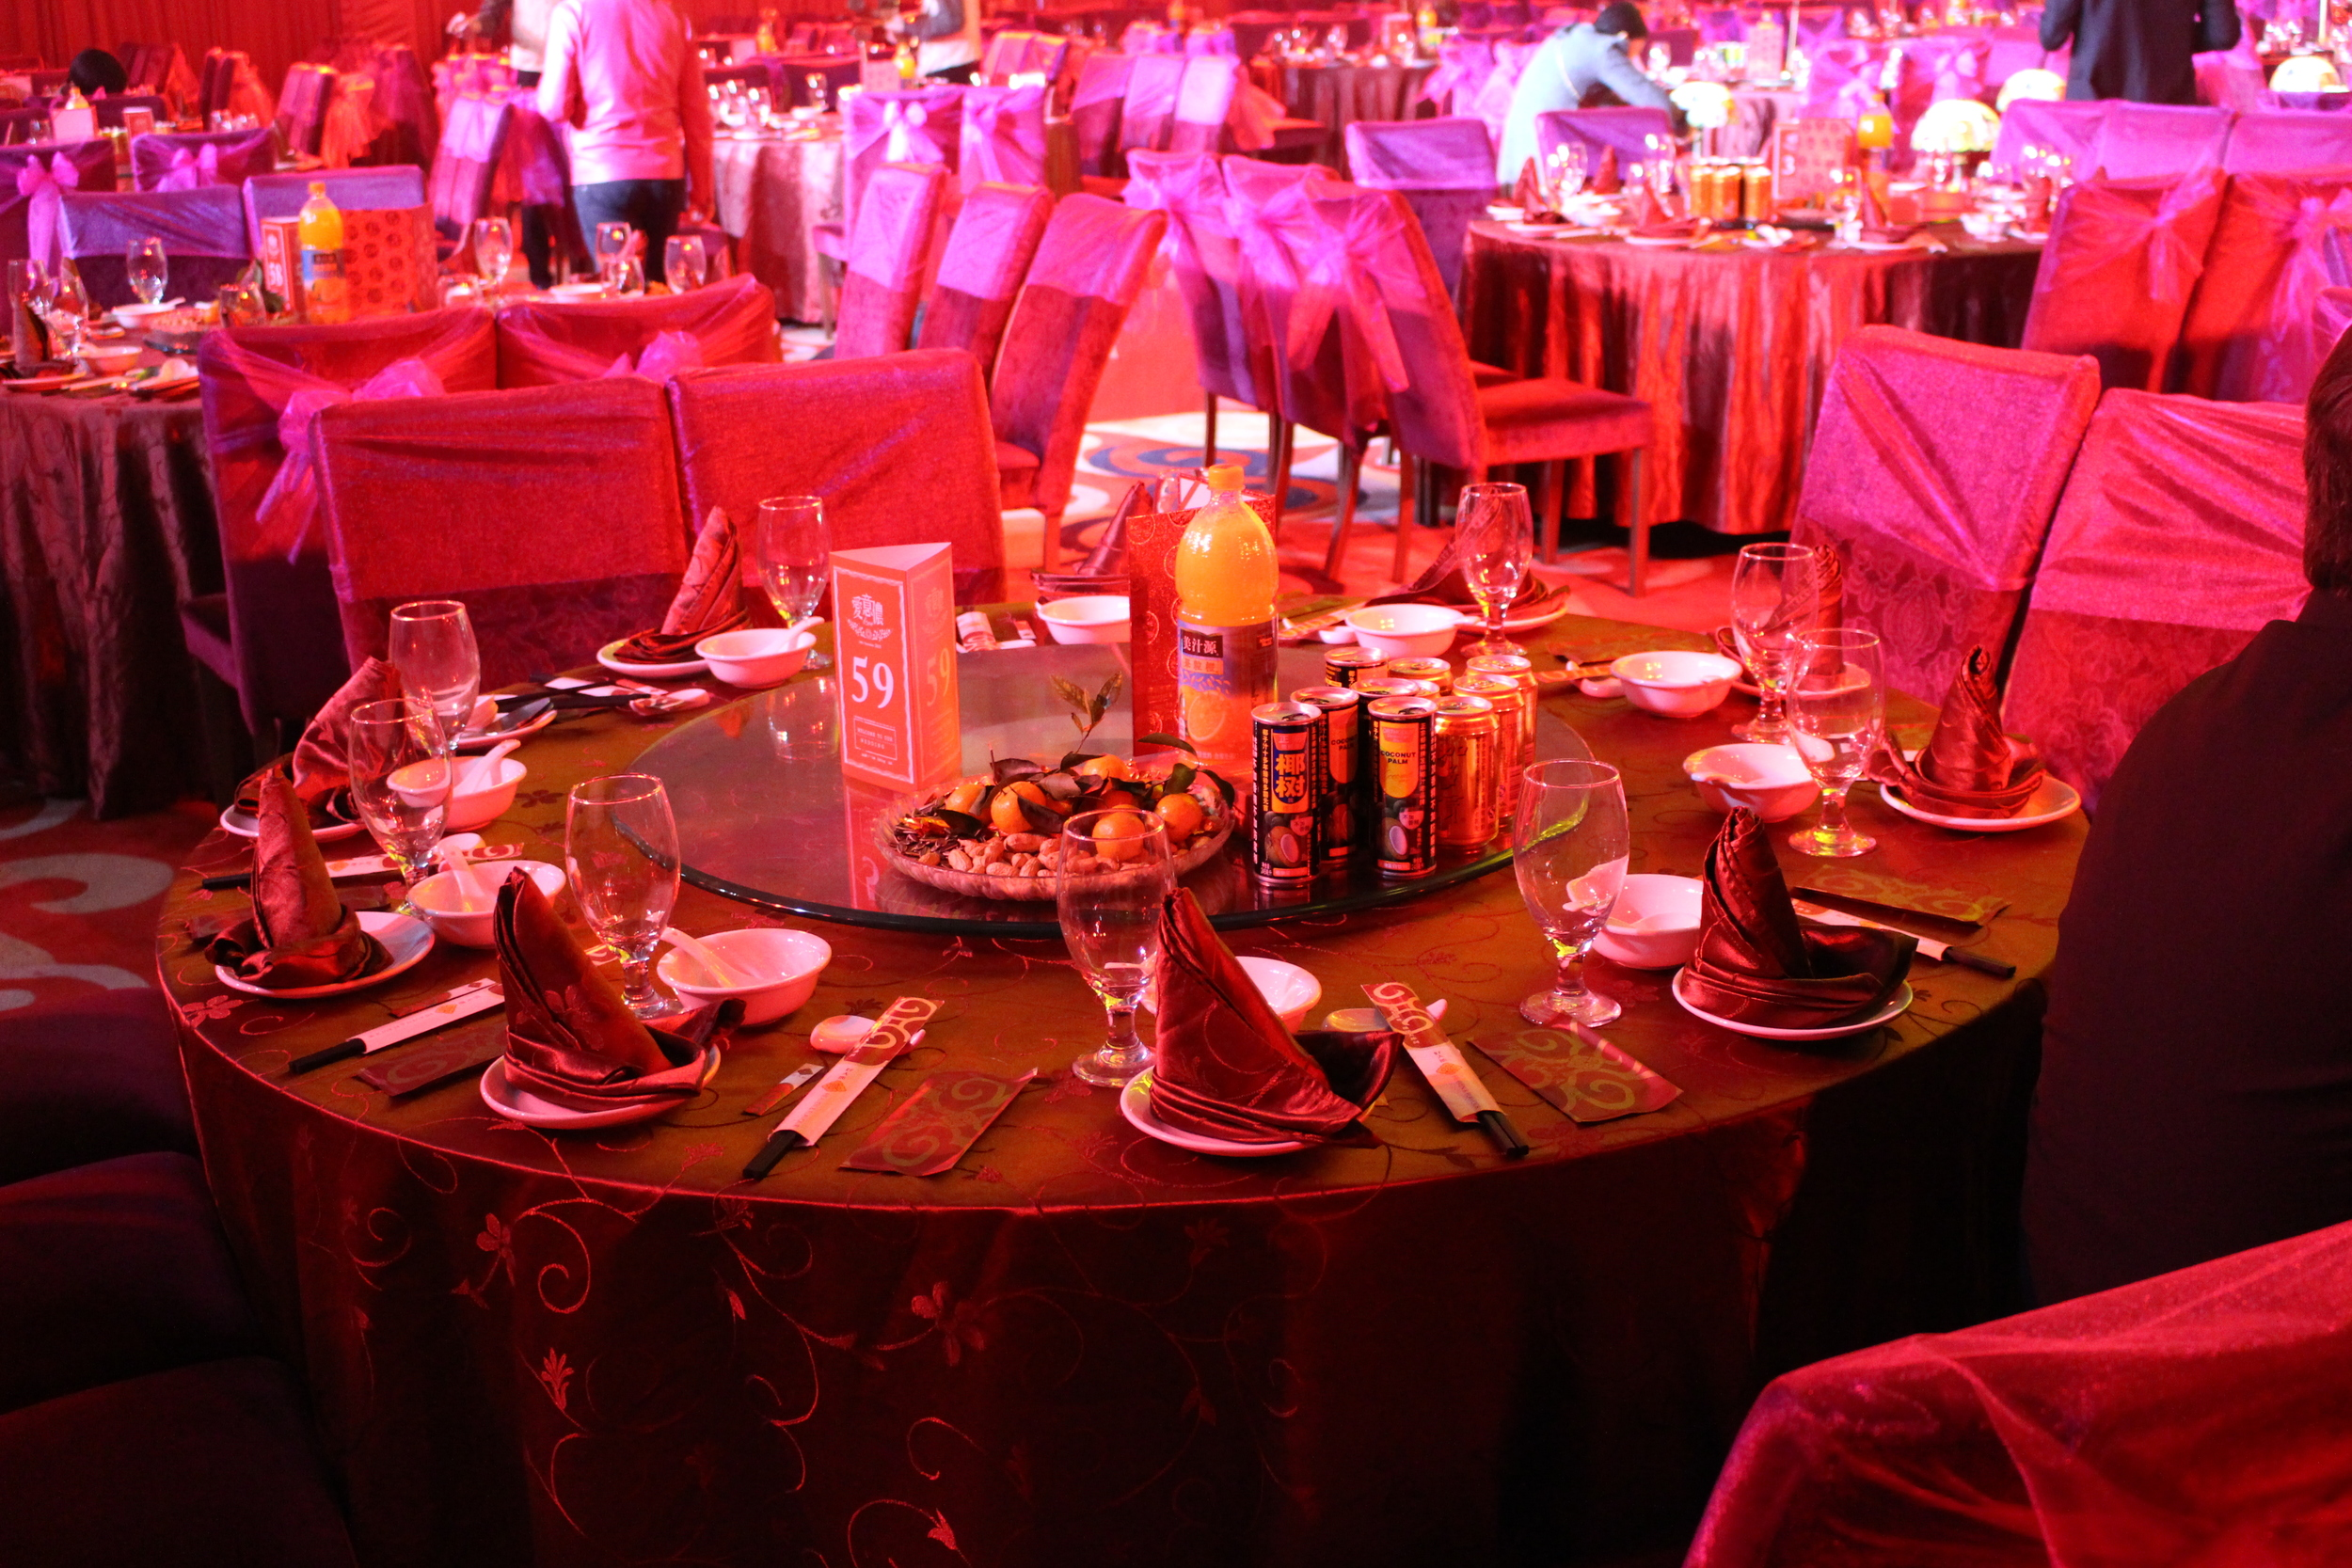 A tablescape in the banquet hall!